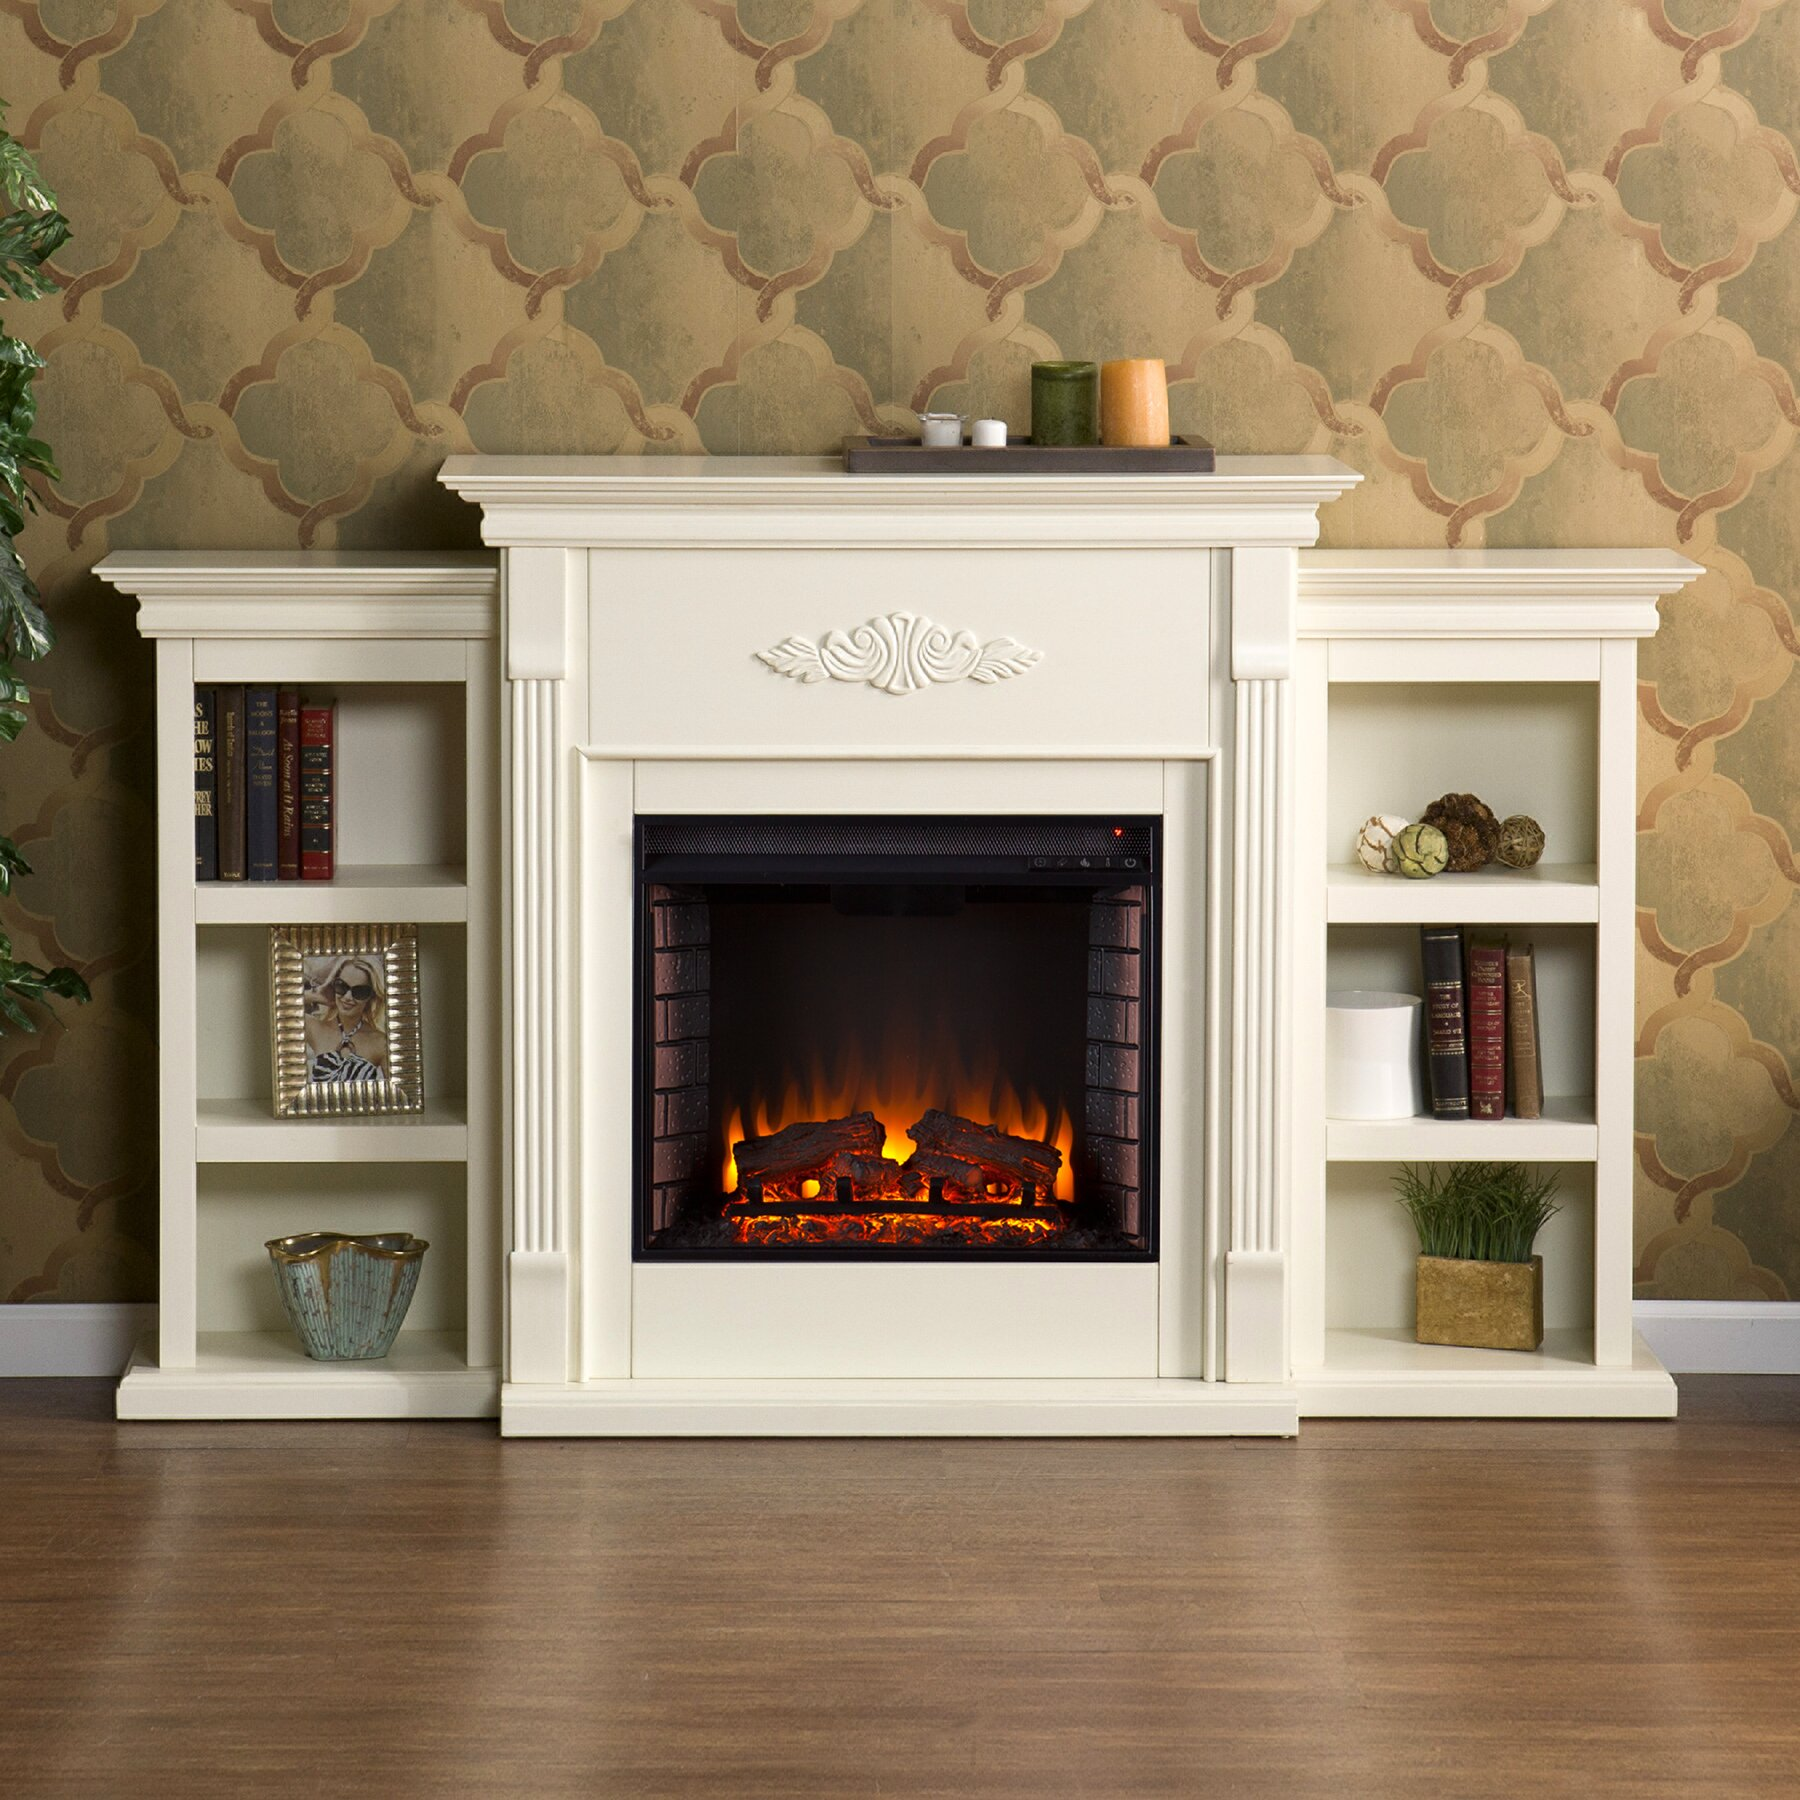 Bedroom electric fireplace - Quick View Beeley Electric Fireplace